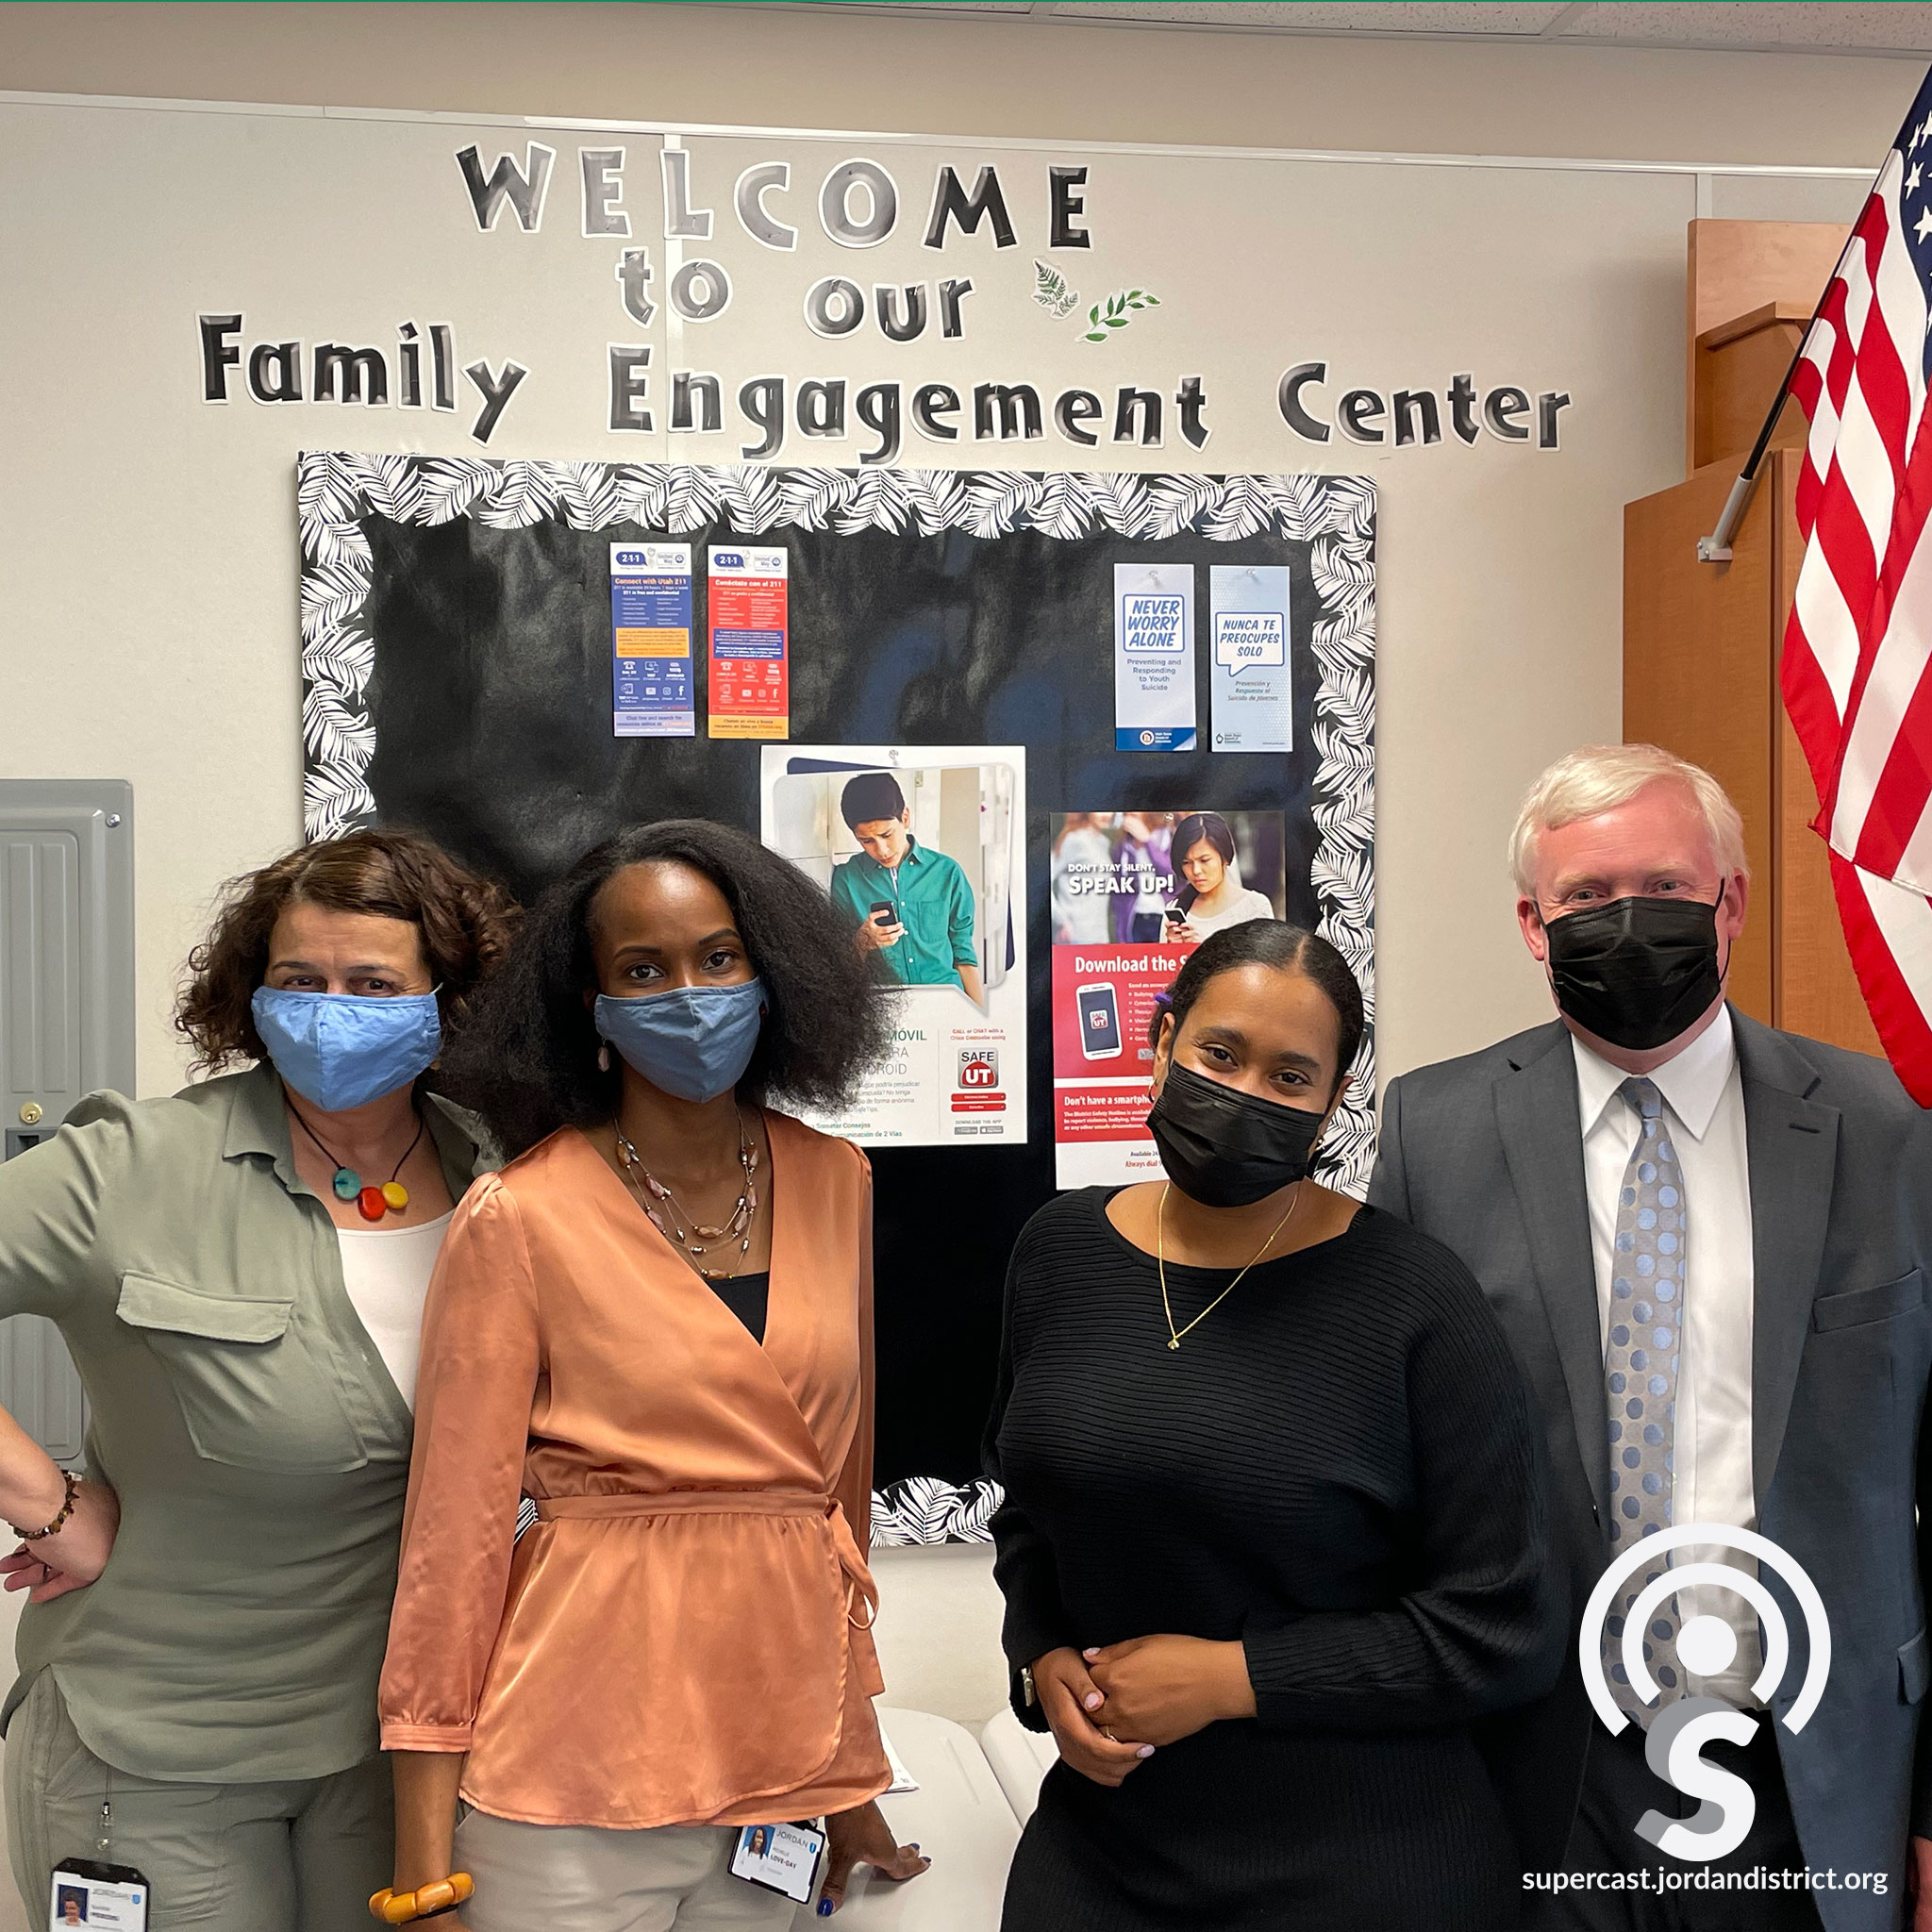 Family Engagement Center staff stand with Superintendent Godfrey